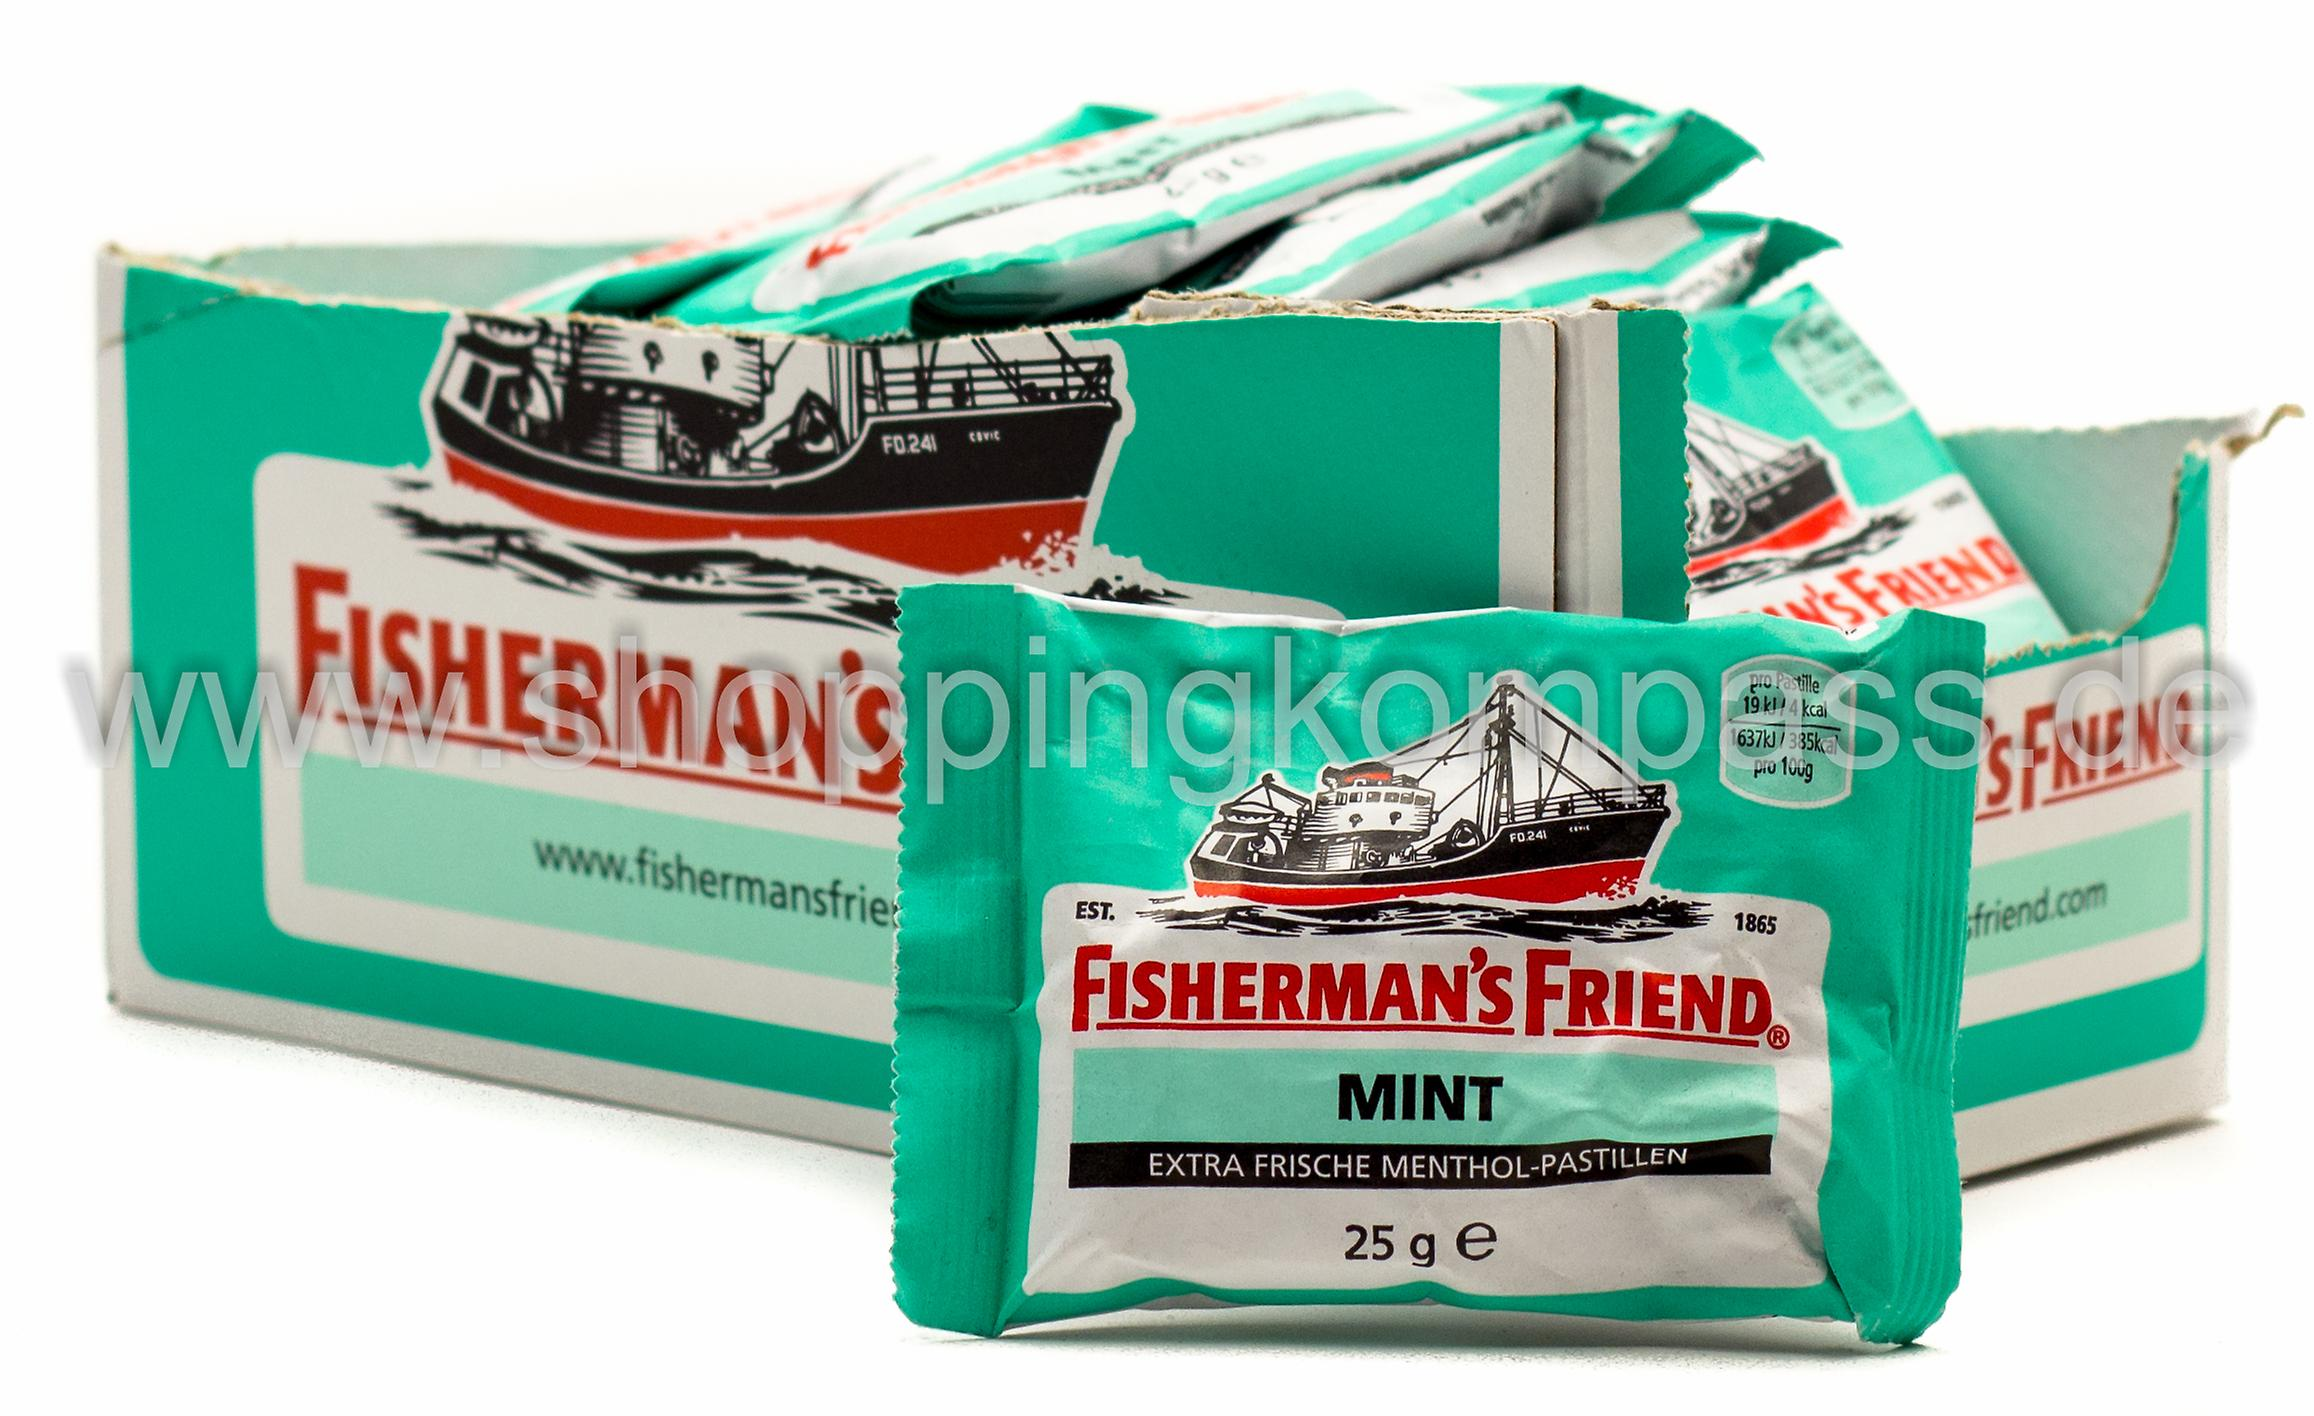 Fisherman's Friend Mint Karton 24 x 25 g